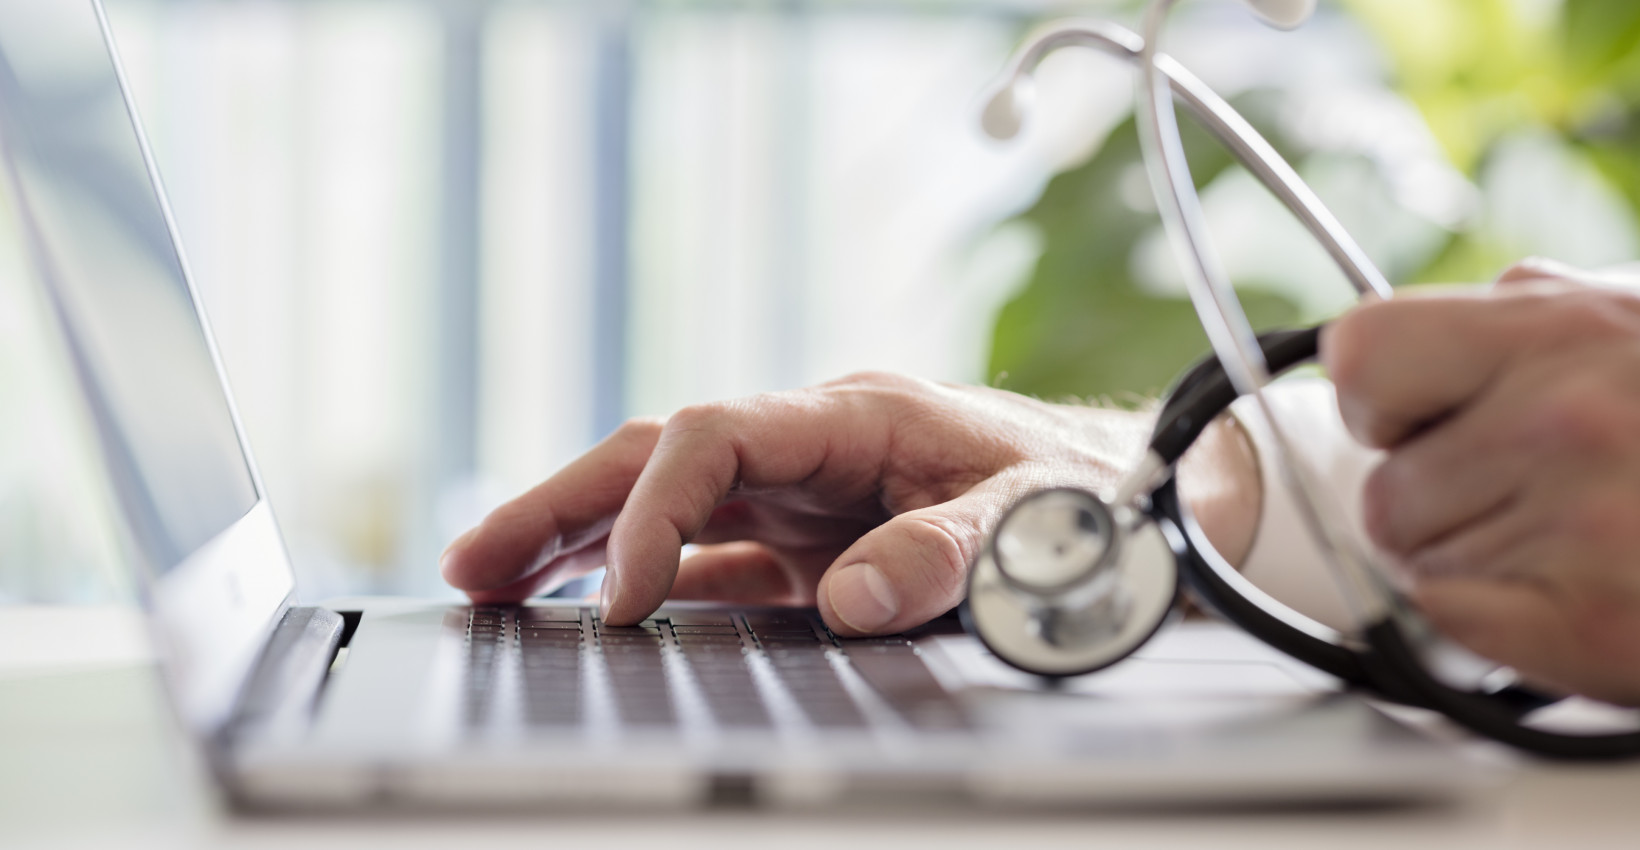 Hand on keyboard with stethoscope